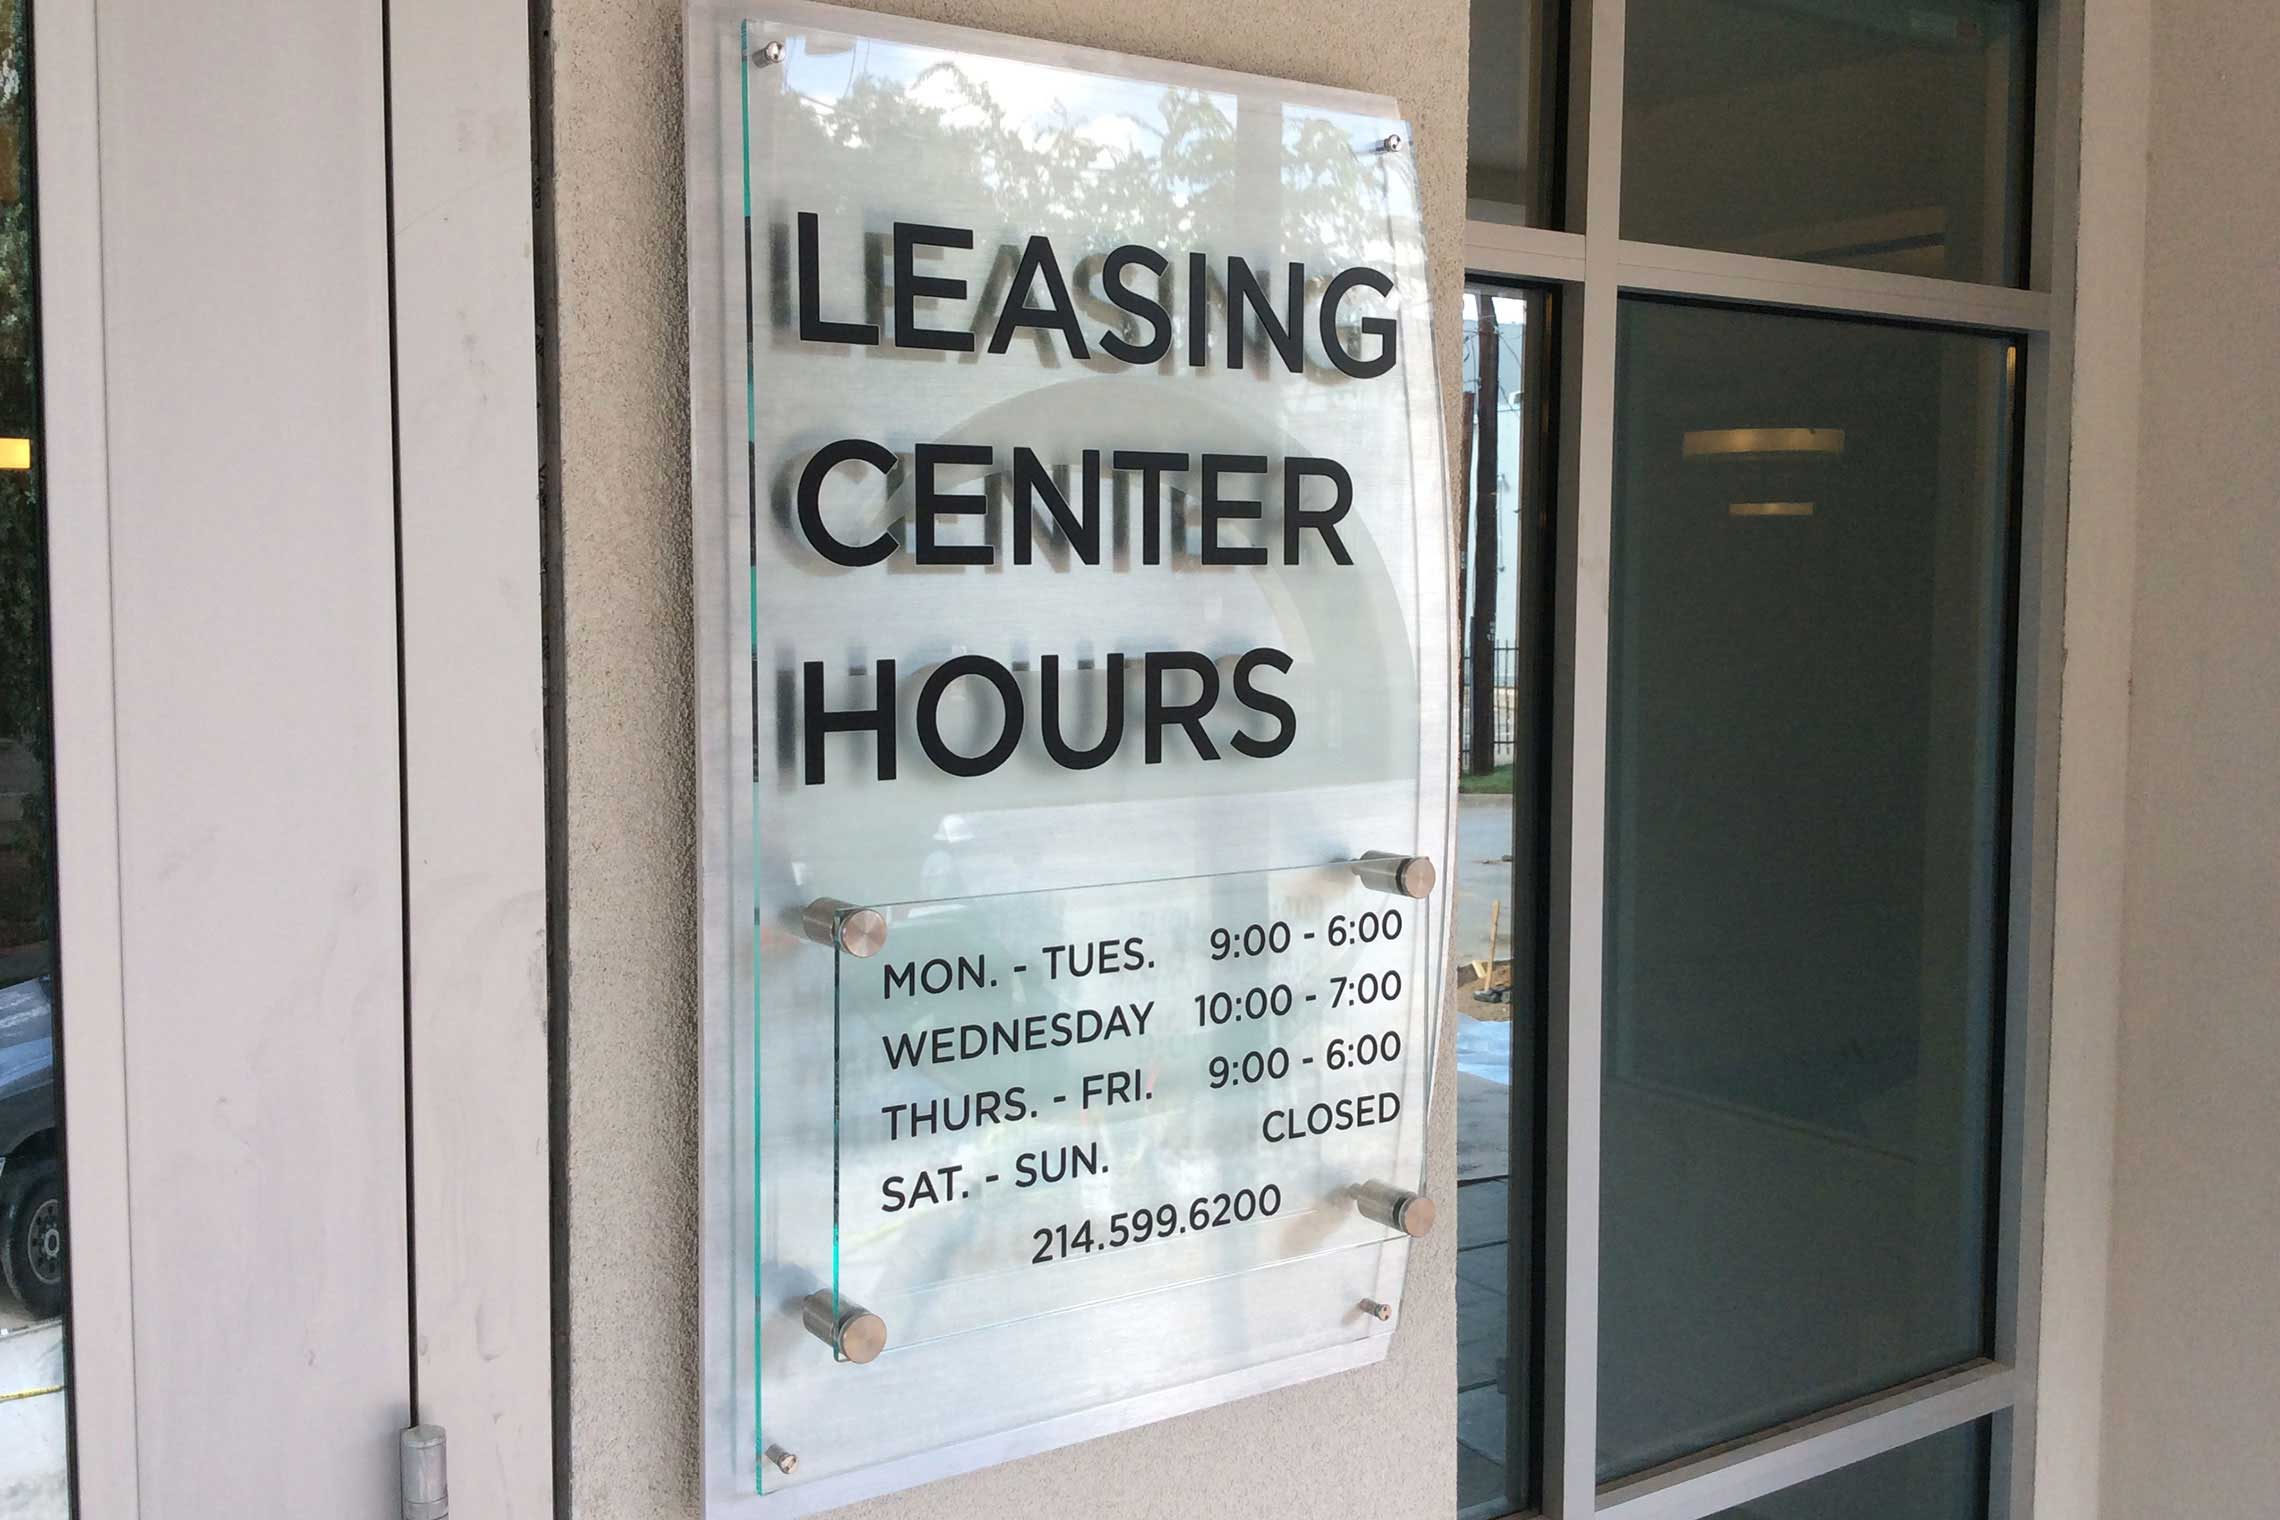 Echo City Apartments Leasing Center Hours with Stand-Offs